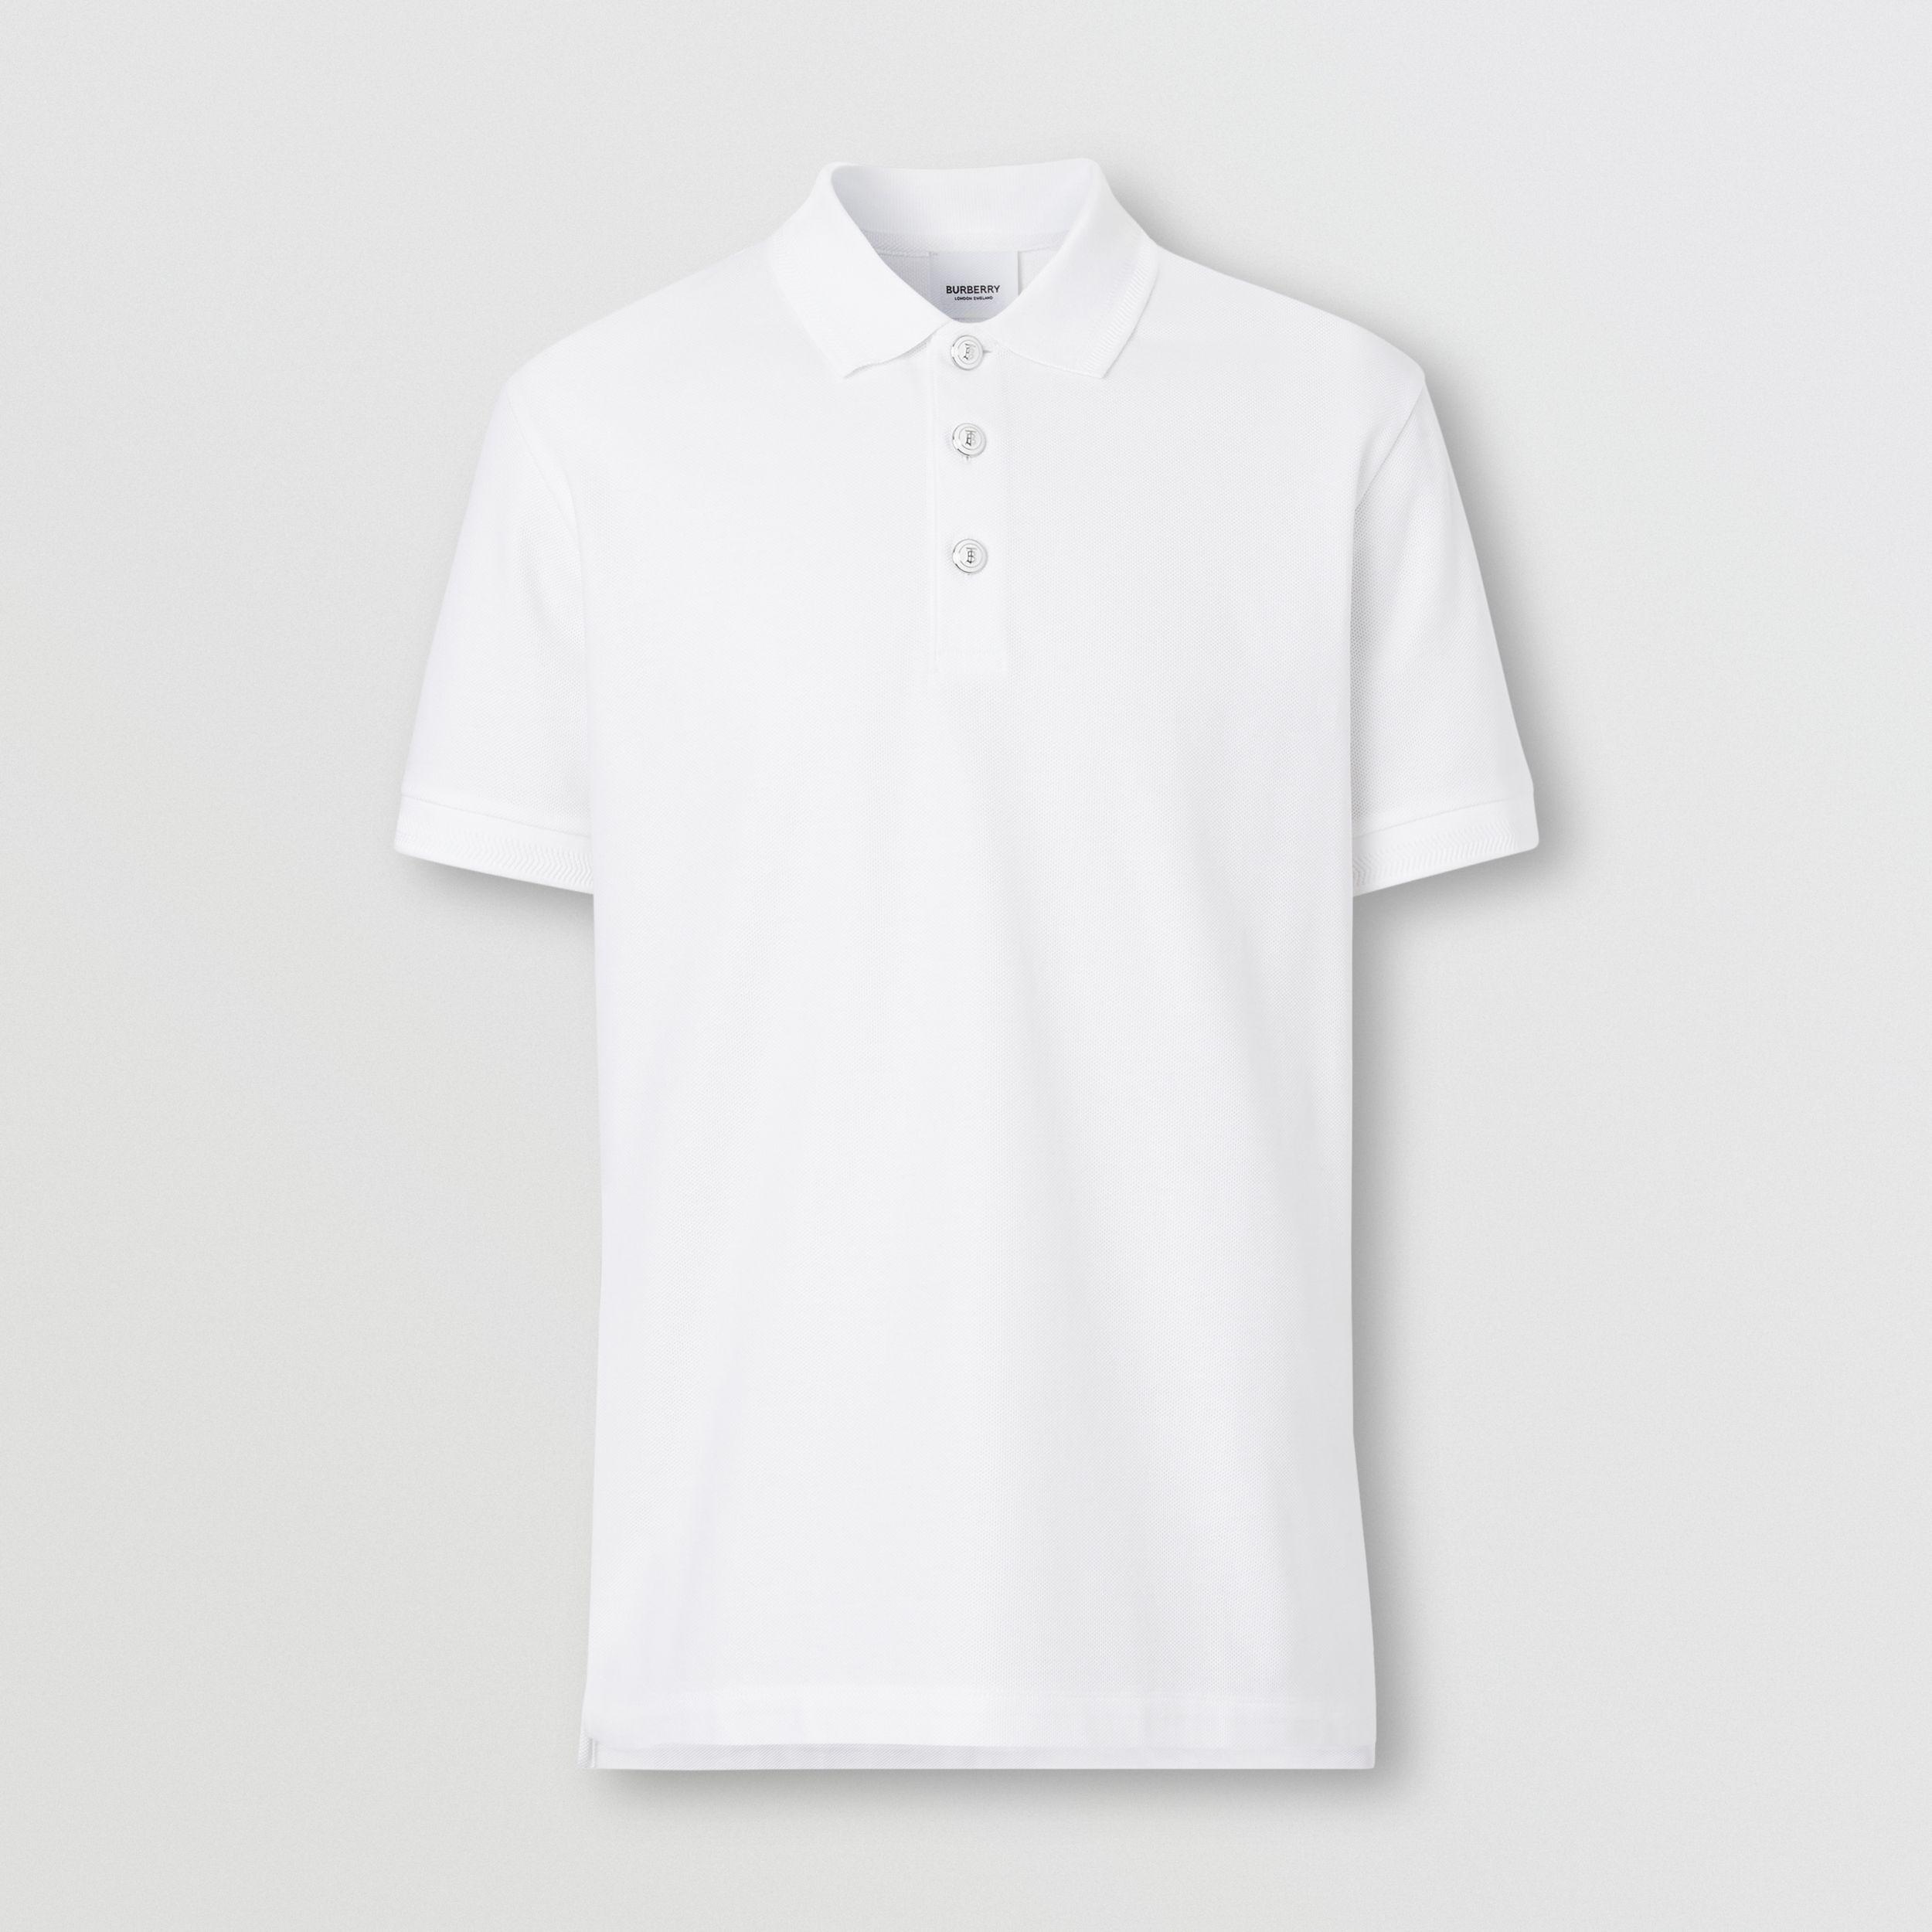 Cotton Piqué Polo Shirt in White - Men | Burberry - 4